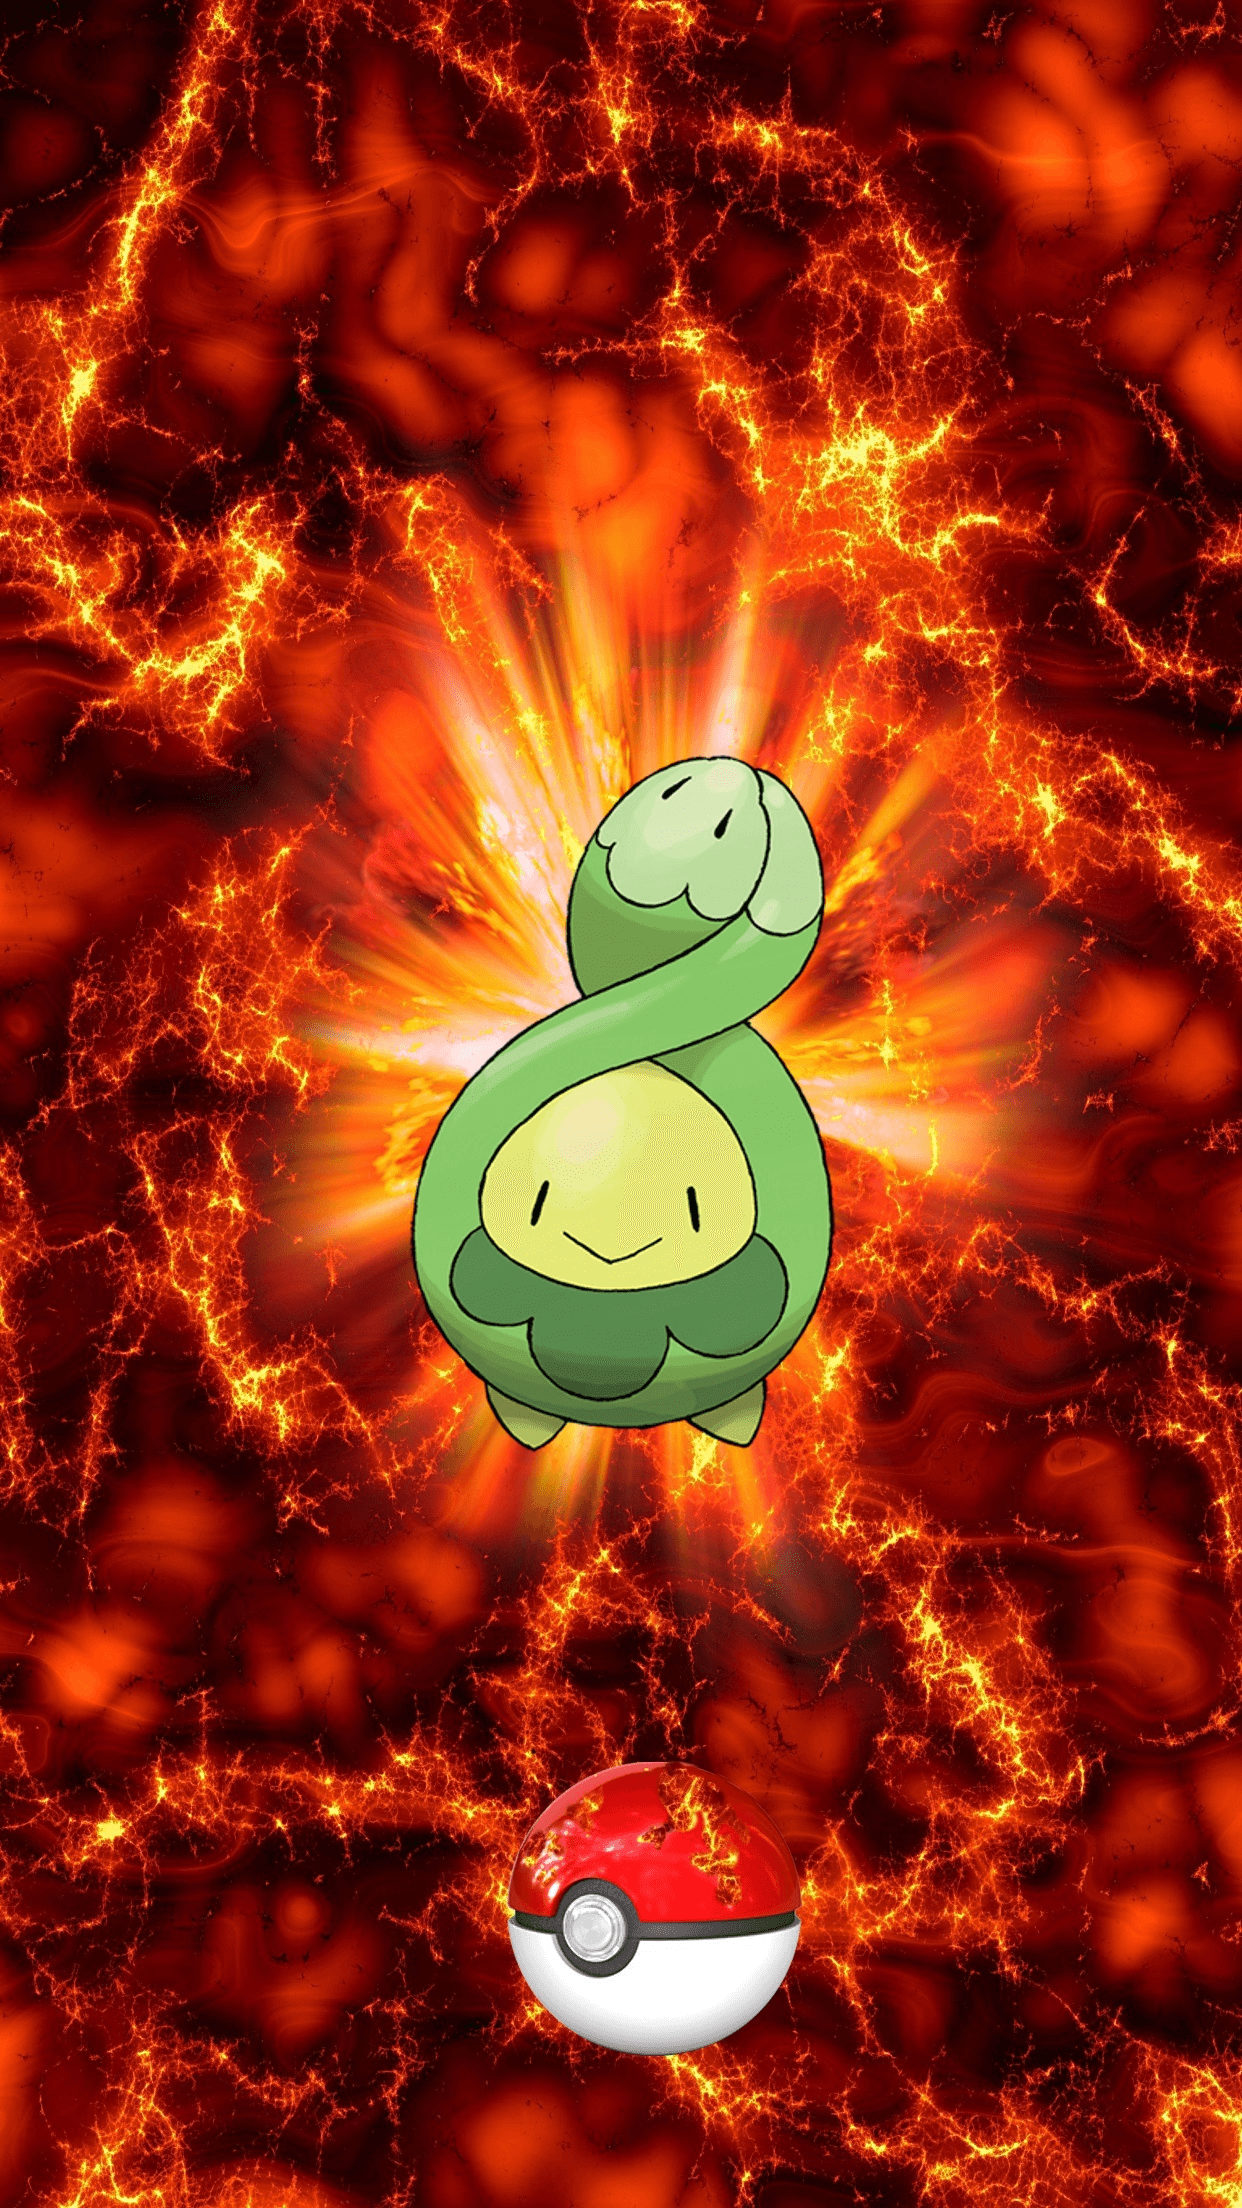 406 Fire Pokeball Budew p Subomie 44 Egg from Roselia or Roserade ...